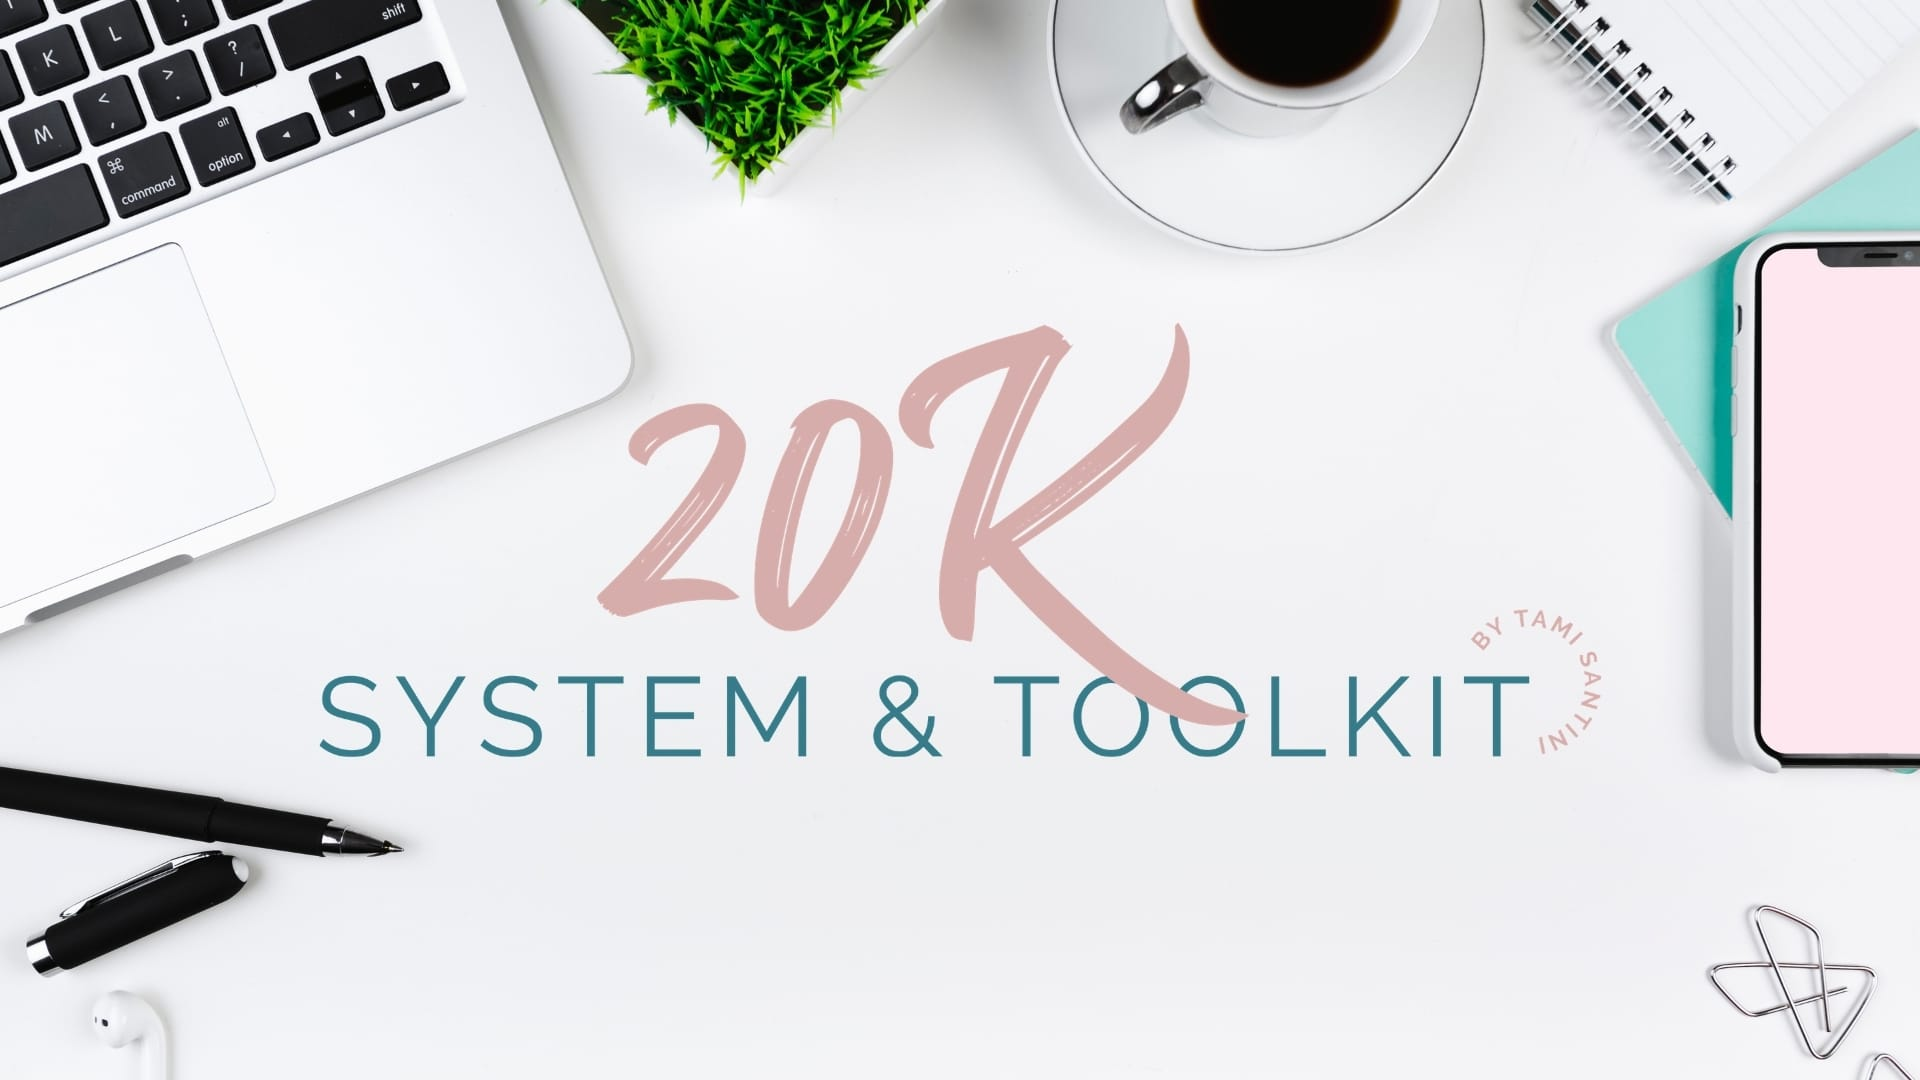 The 20K System & Toolkit